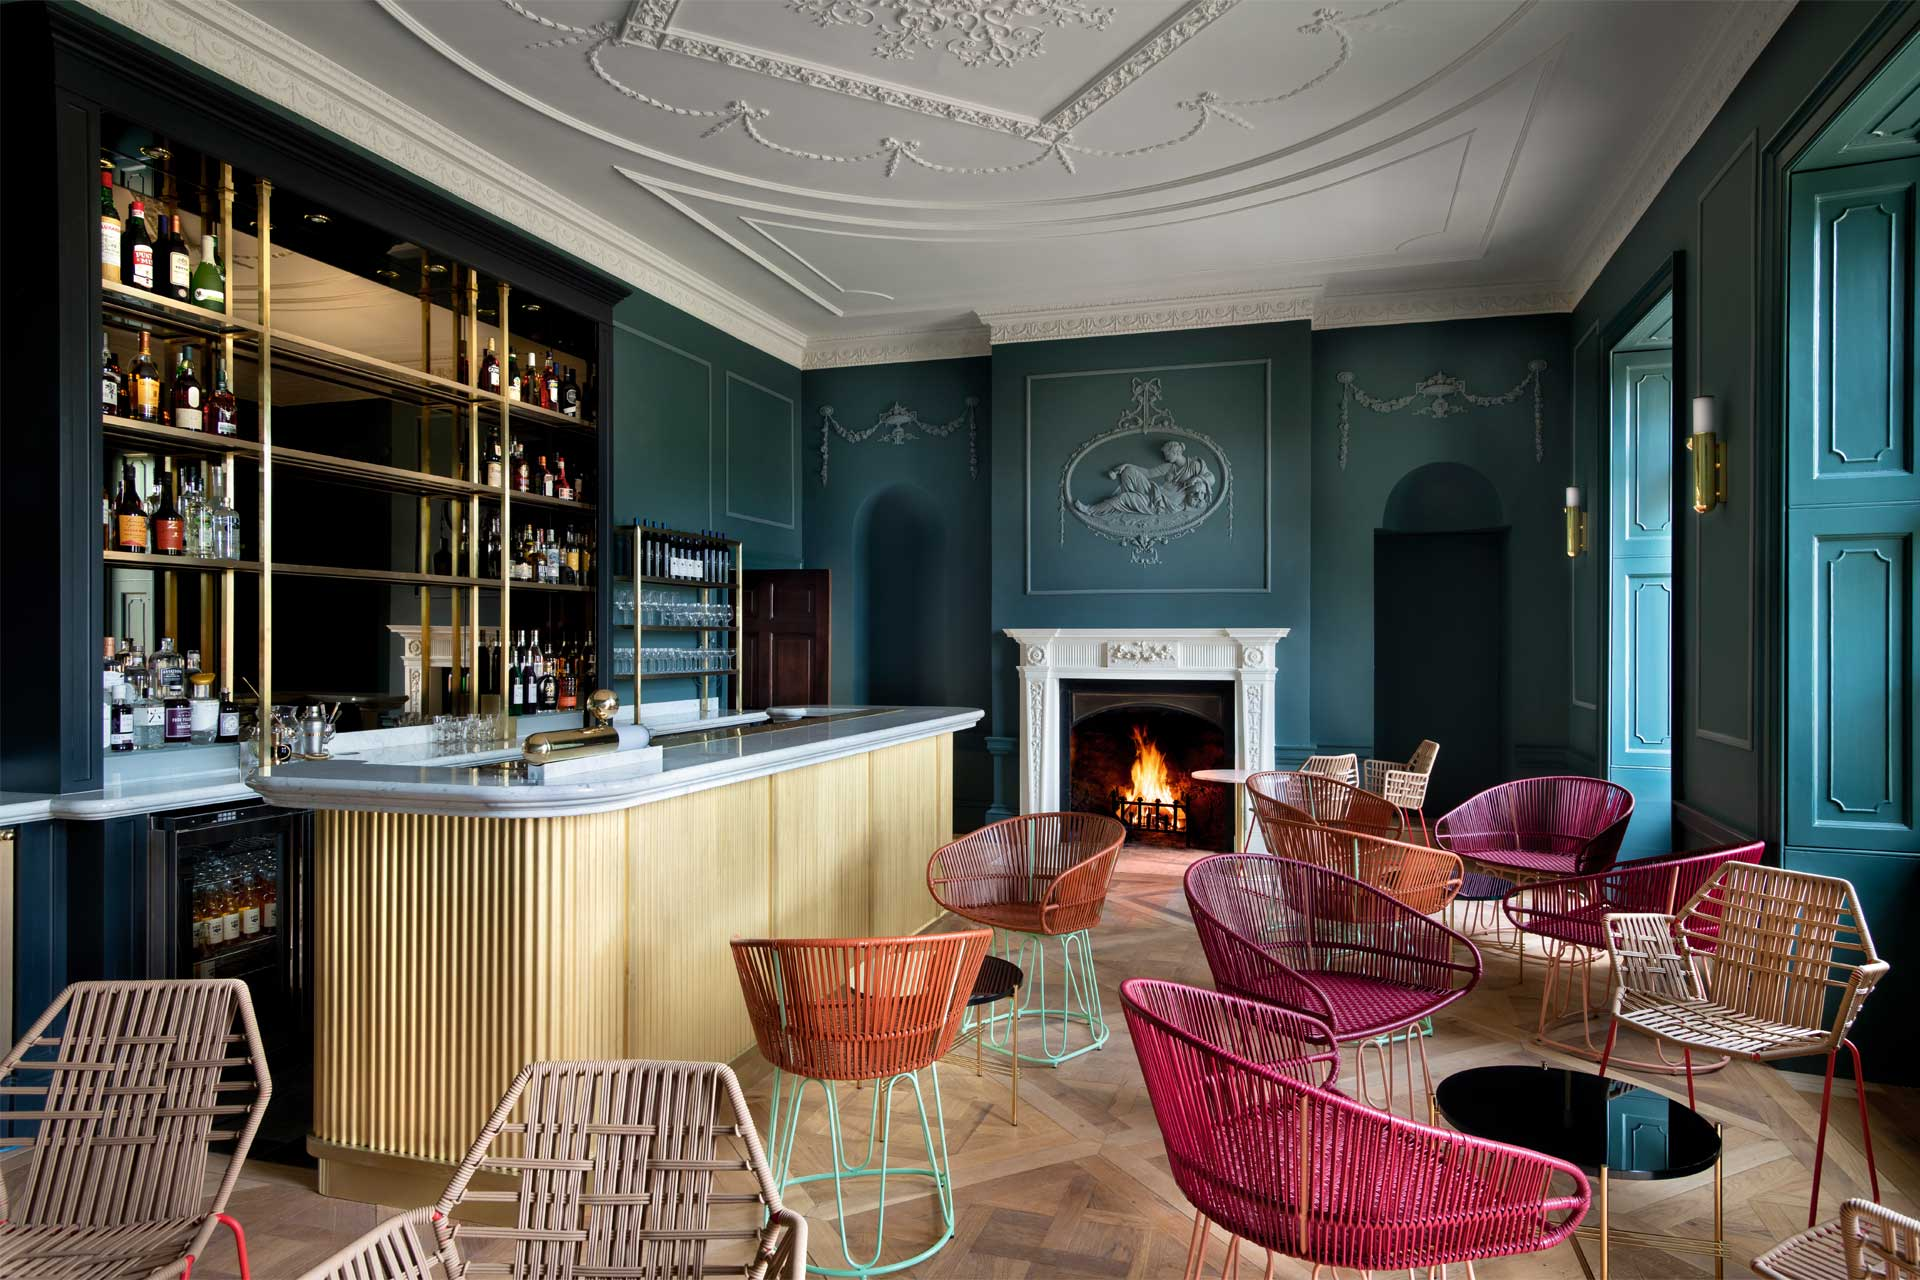 The bar at The Newt in Somerset, England